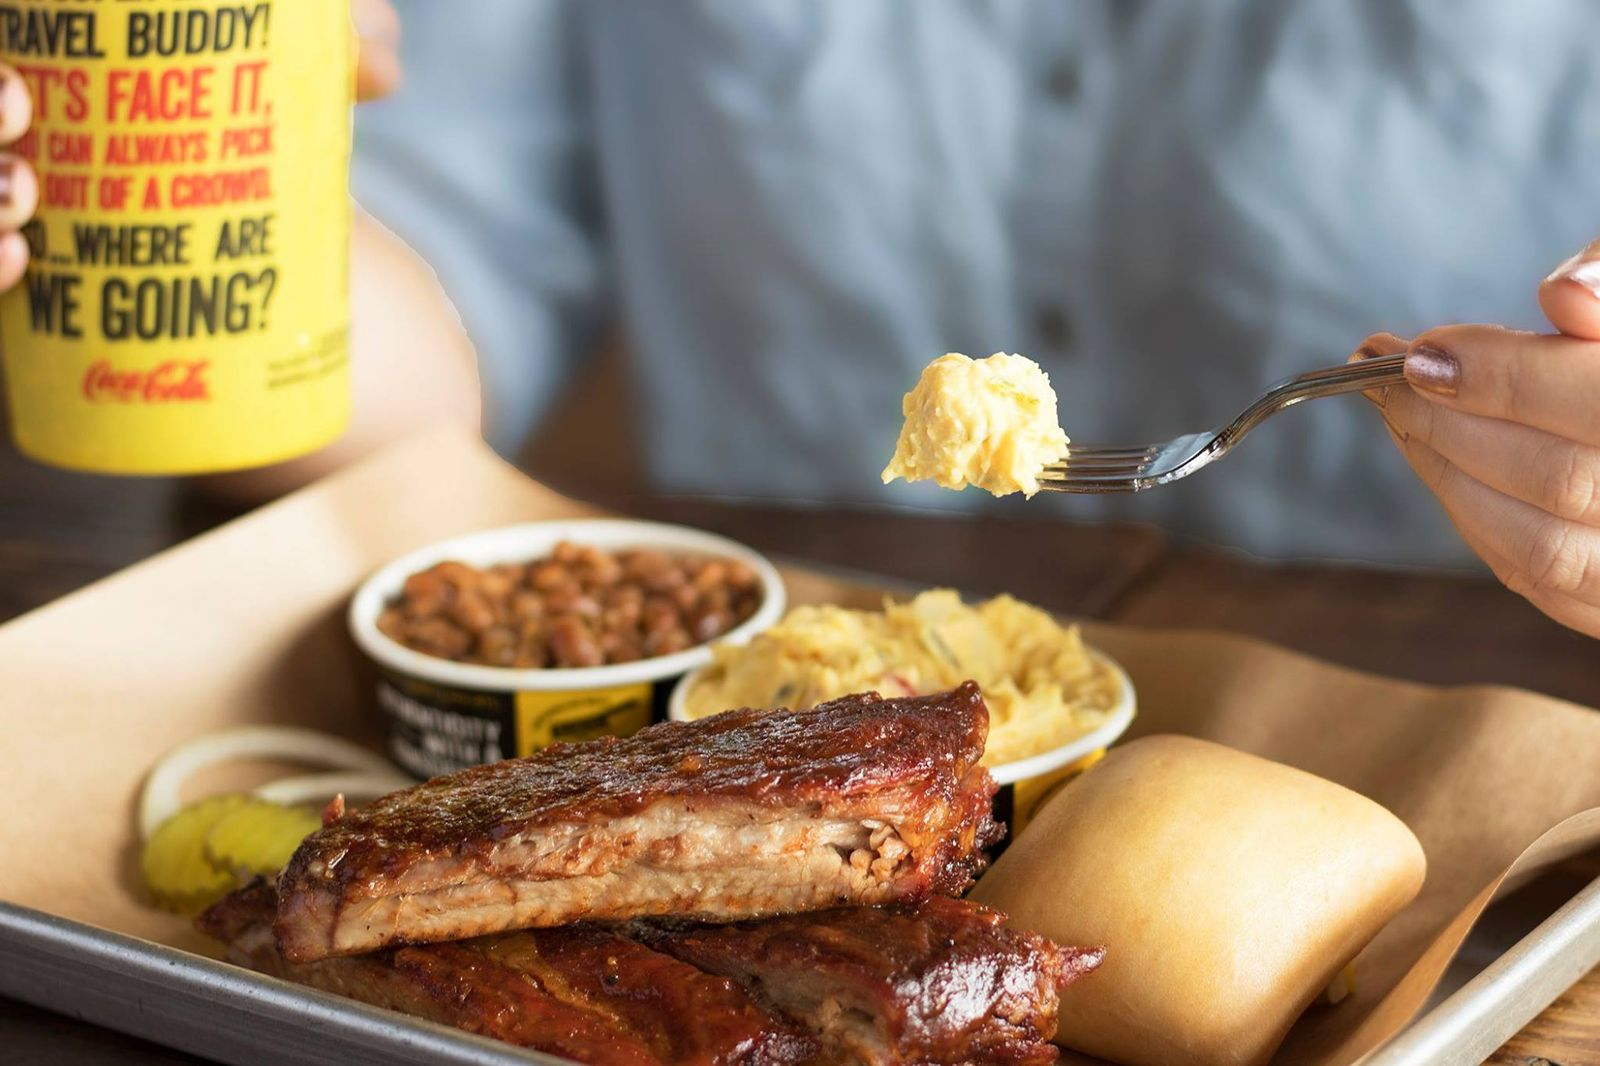 Local Franchisee Brings Dickey's Barbecue Pit to Lutz